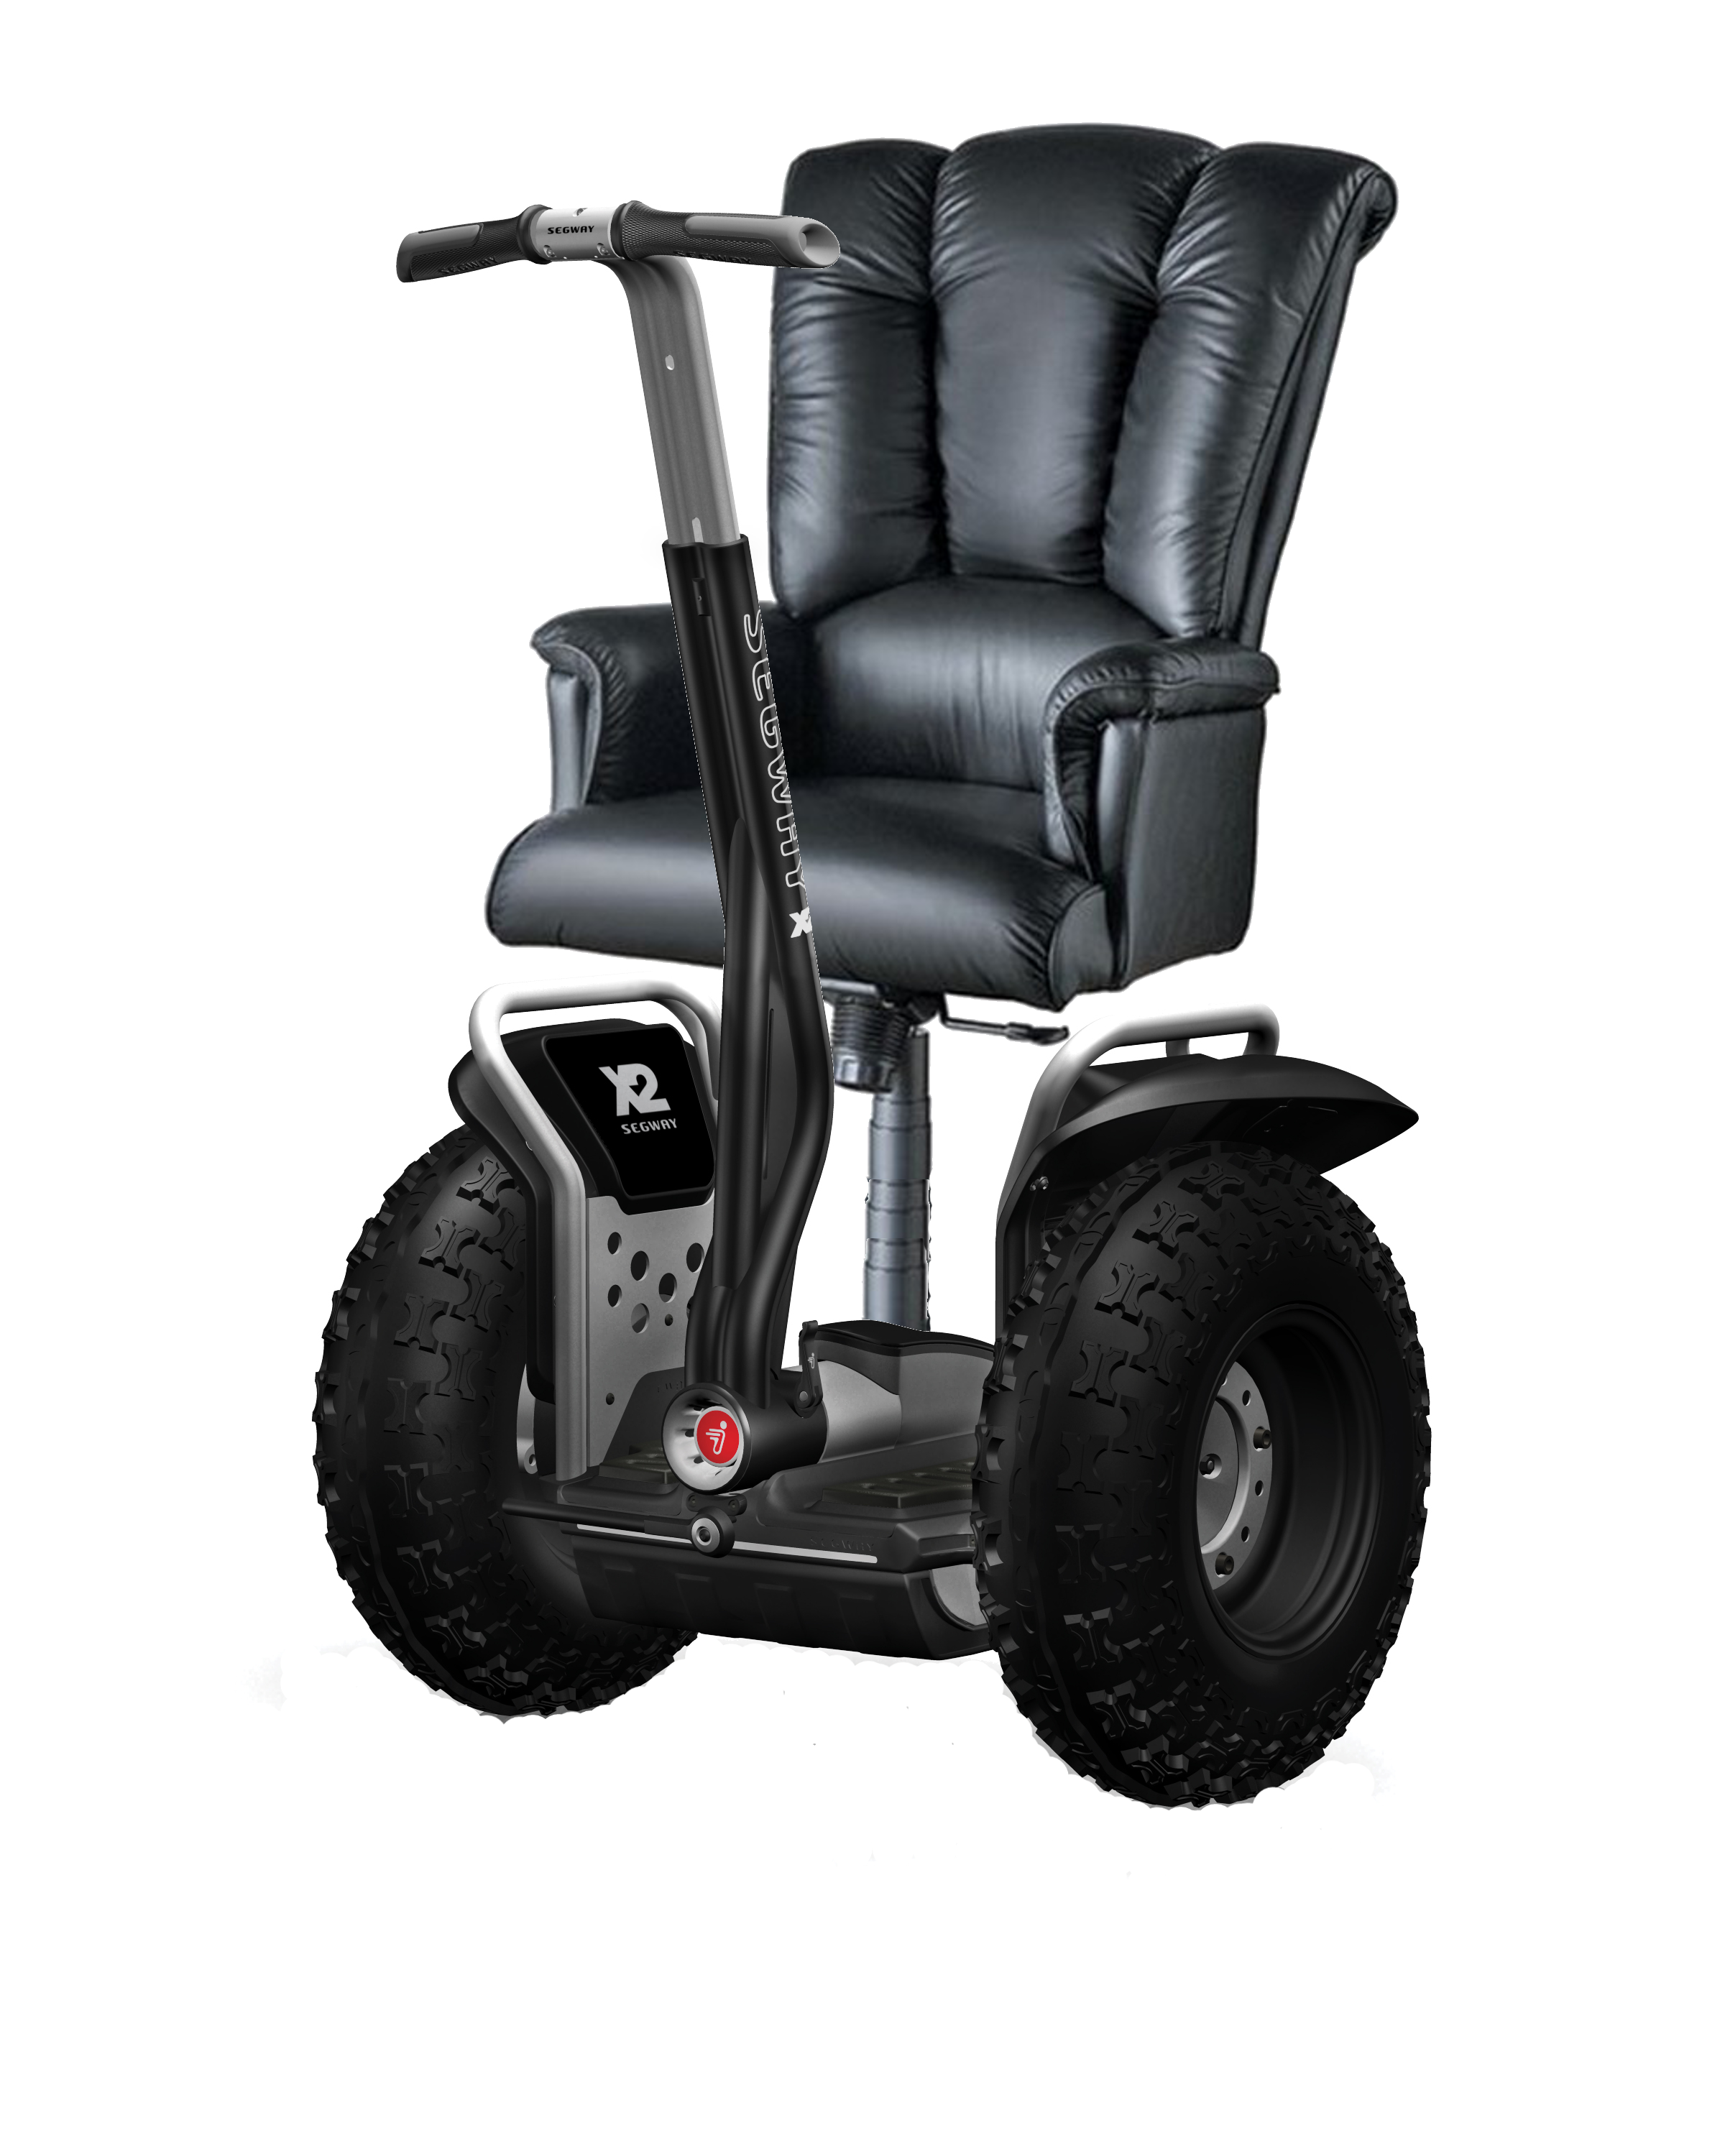 Segway Chair Lazy Boy | Segway Mobility | Pinterest ...